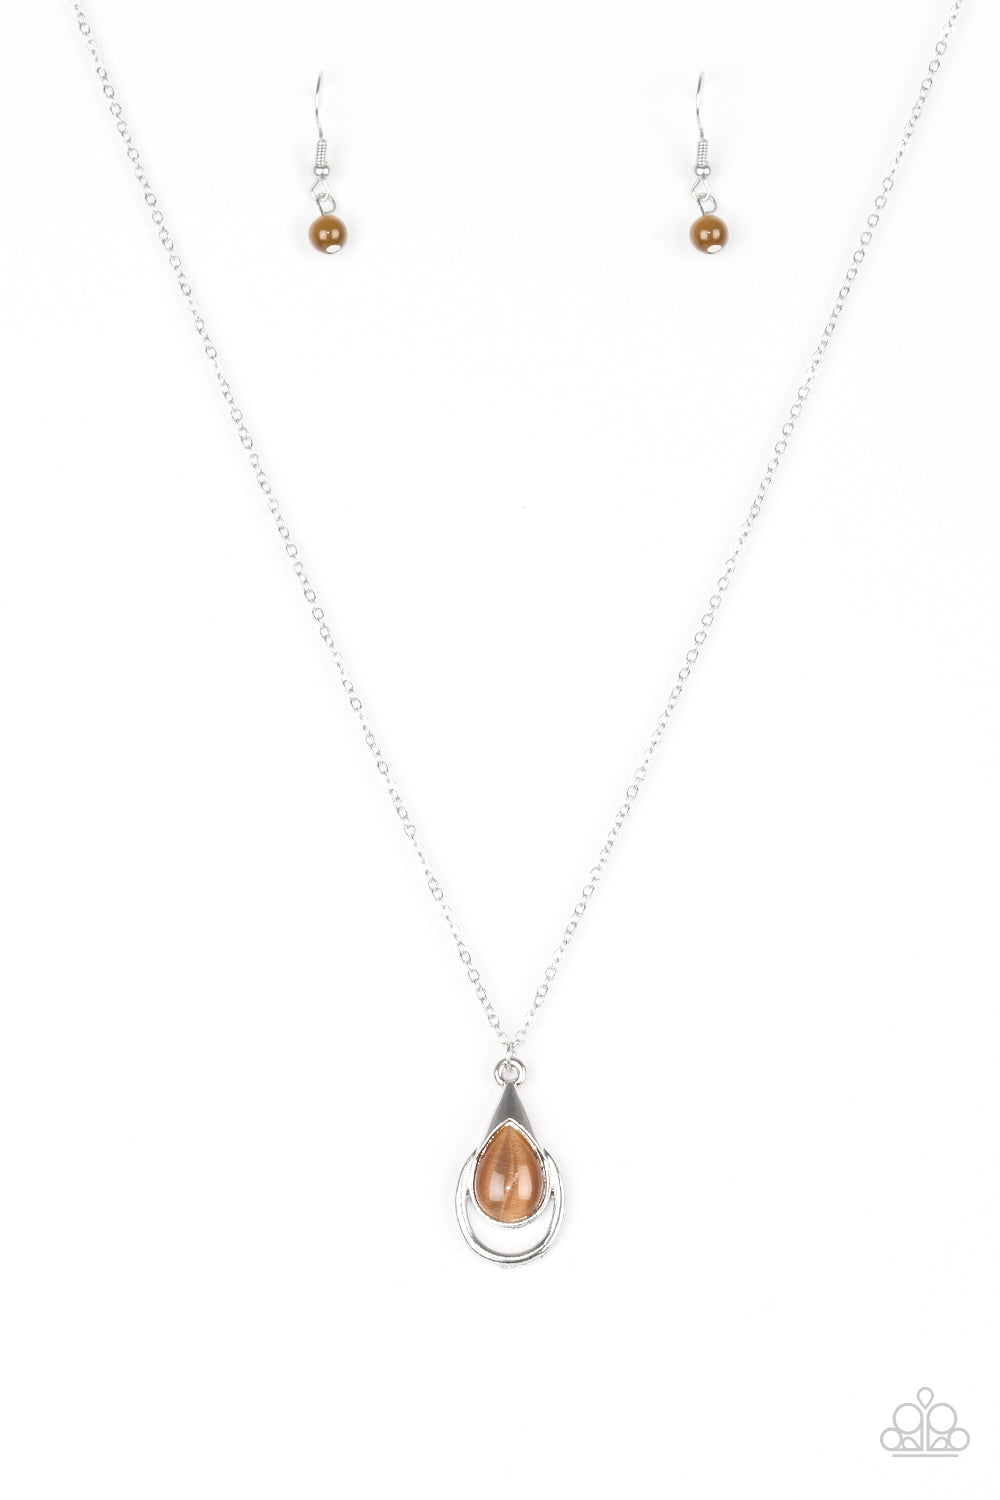 Paparazzi Accessories - Just Drop It! | Brown Moonstone | Paparazzi Necklace and Earring Set - Necklaces